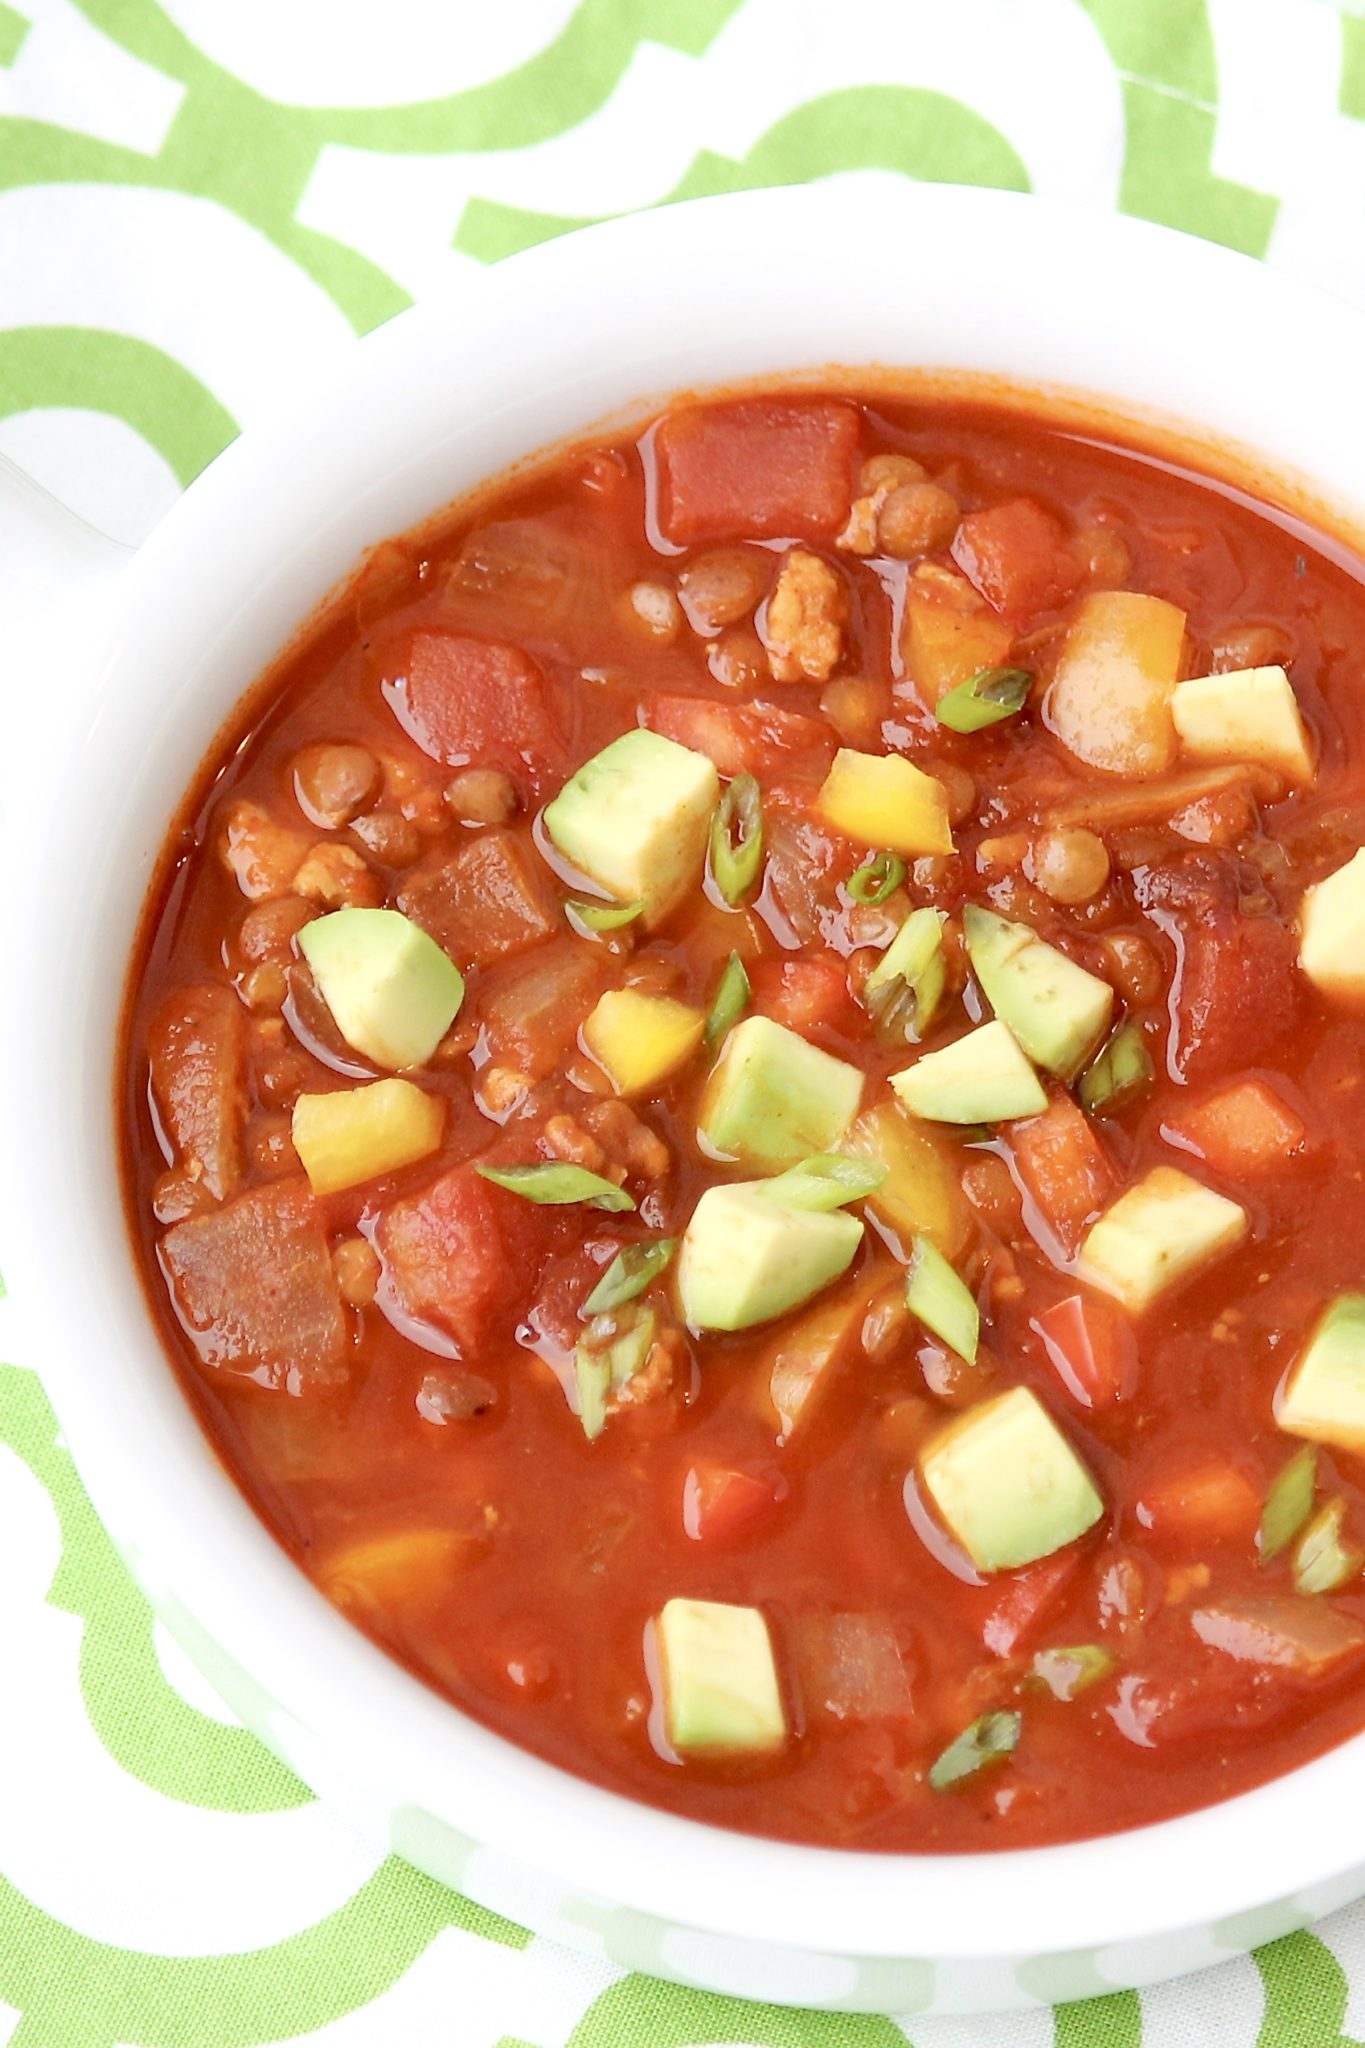 Lentils replace the beans while ground turkey stands in for beef in this spin on the traditional bowl of chili. It does so with a relatively short list of ingredients and a familiar flavor profile that even my kids enjoy!